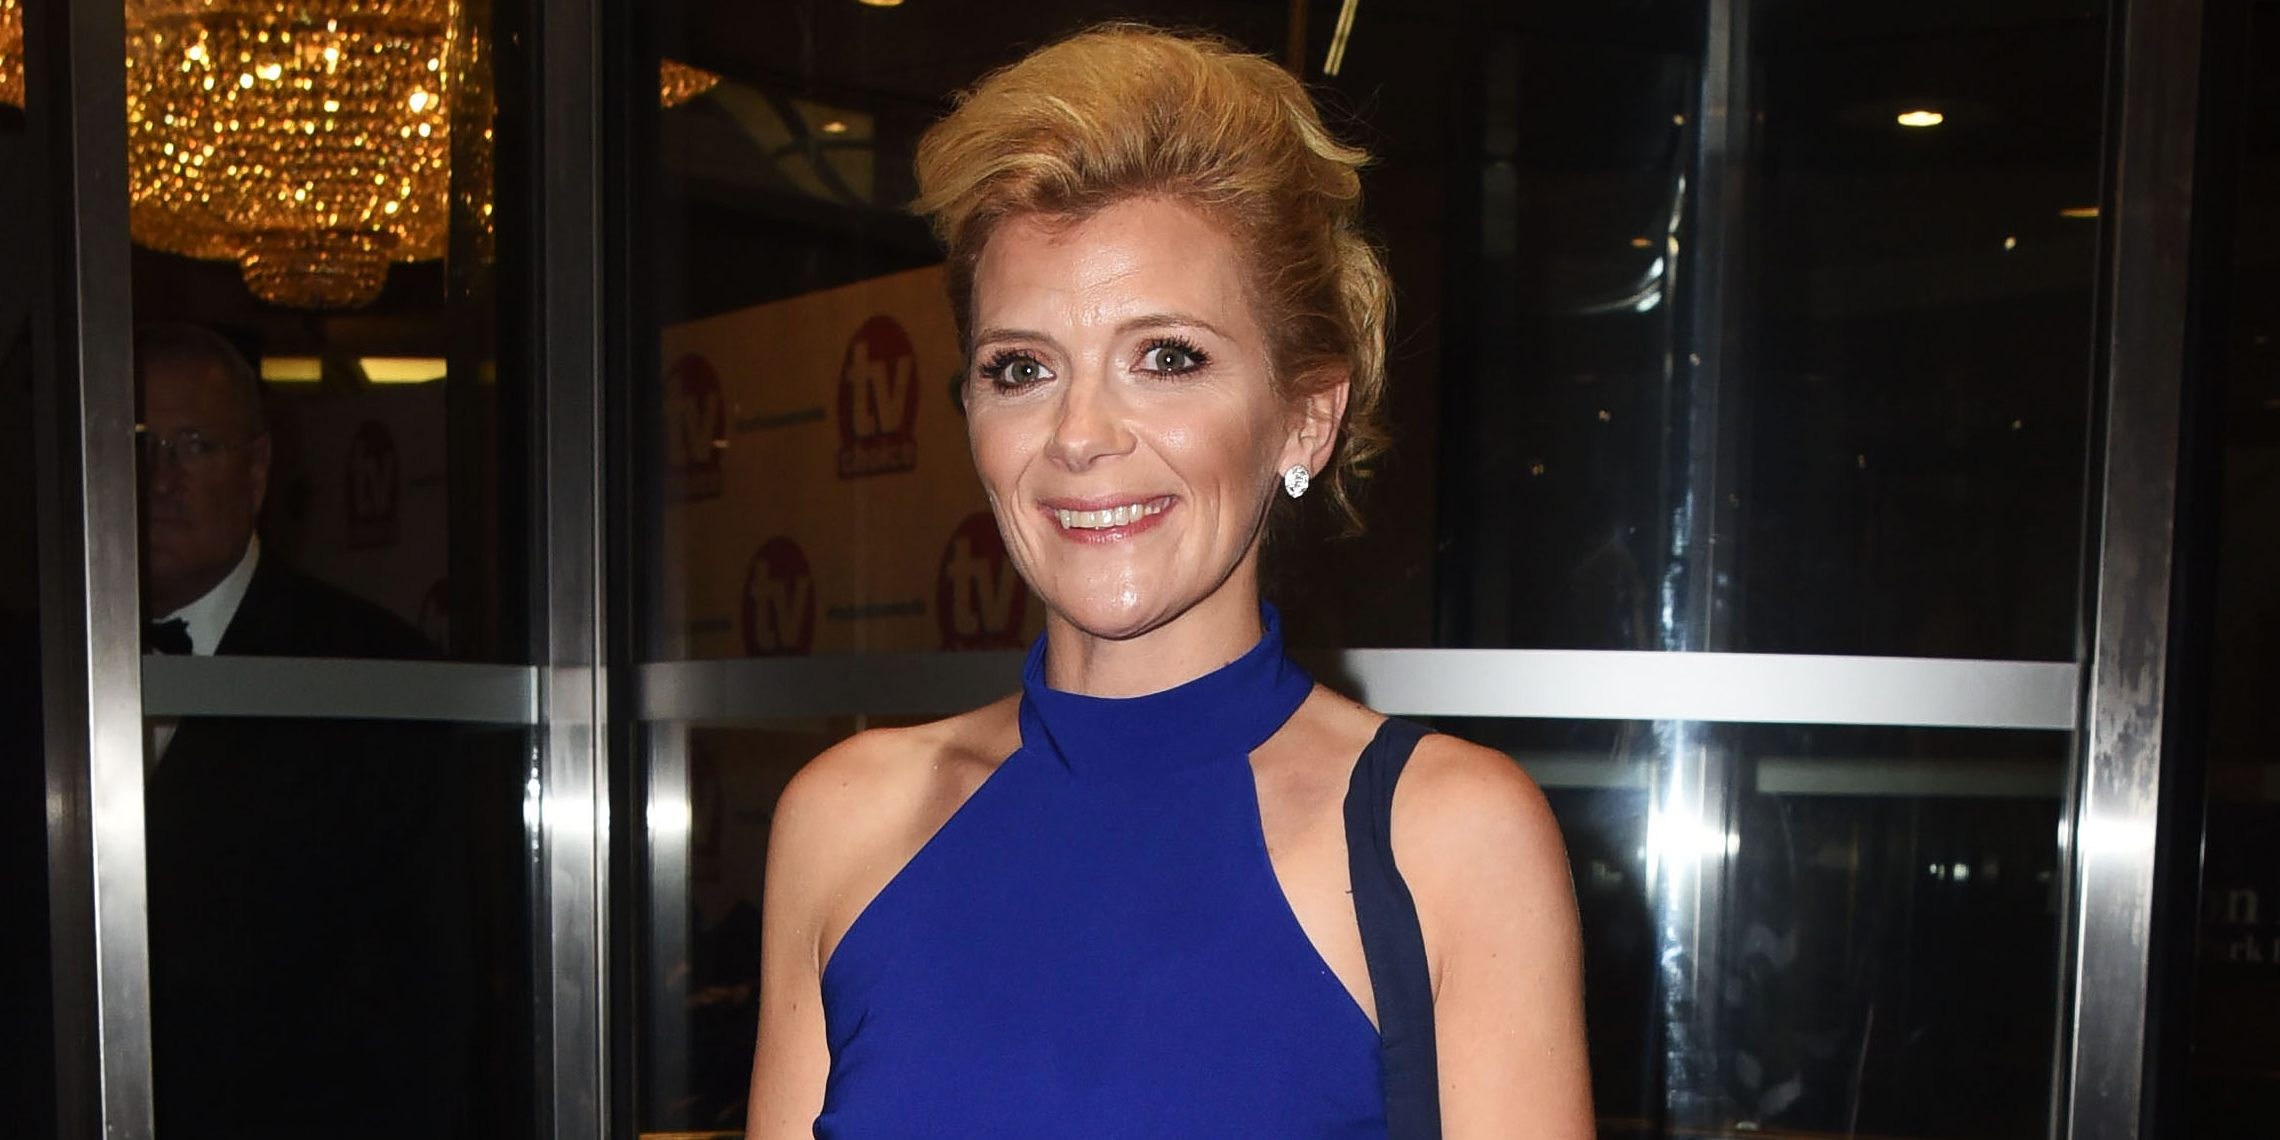 Jane Danson's Coronation Street co-stars pay sweet tribute on her birthday